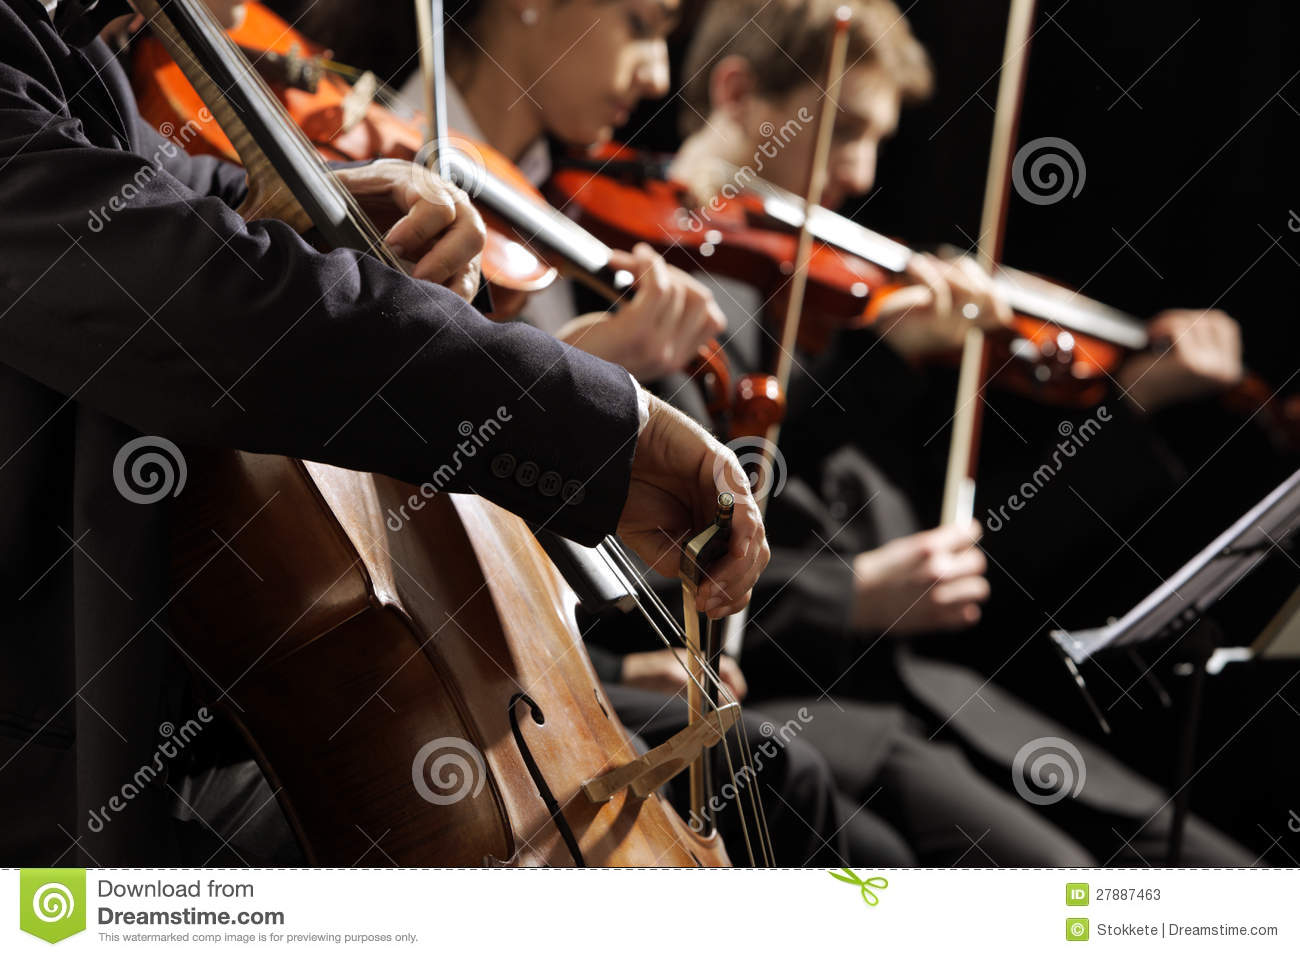 Symphony concert, a men playing the cello, hand close up.